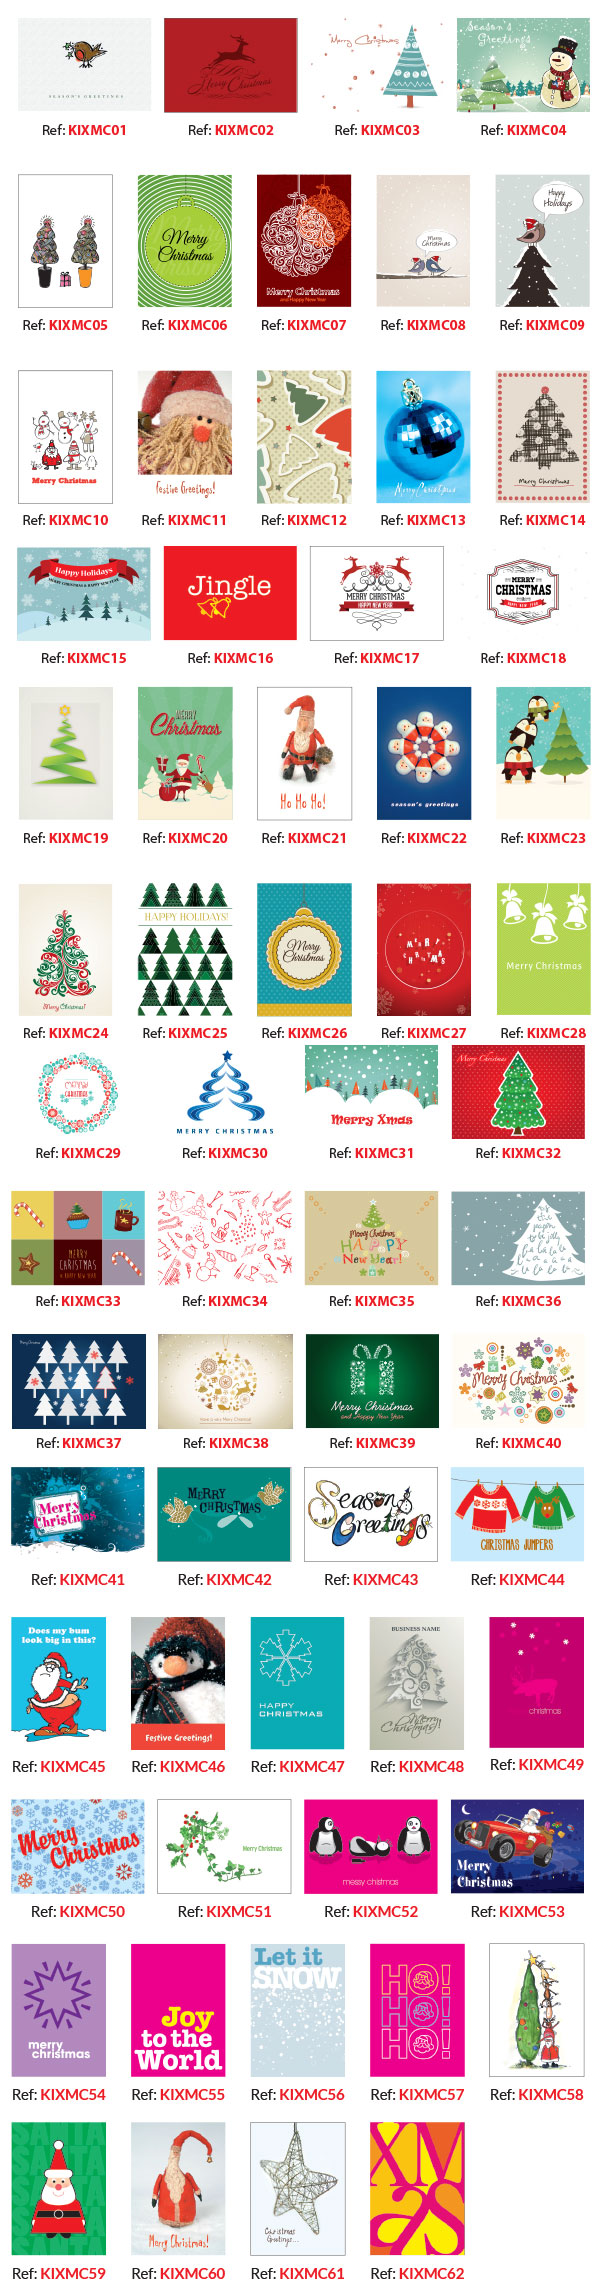 Personalised Christmas Cards Designs